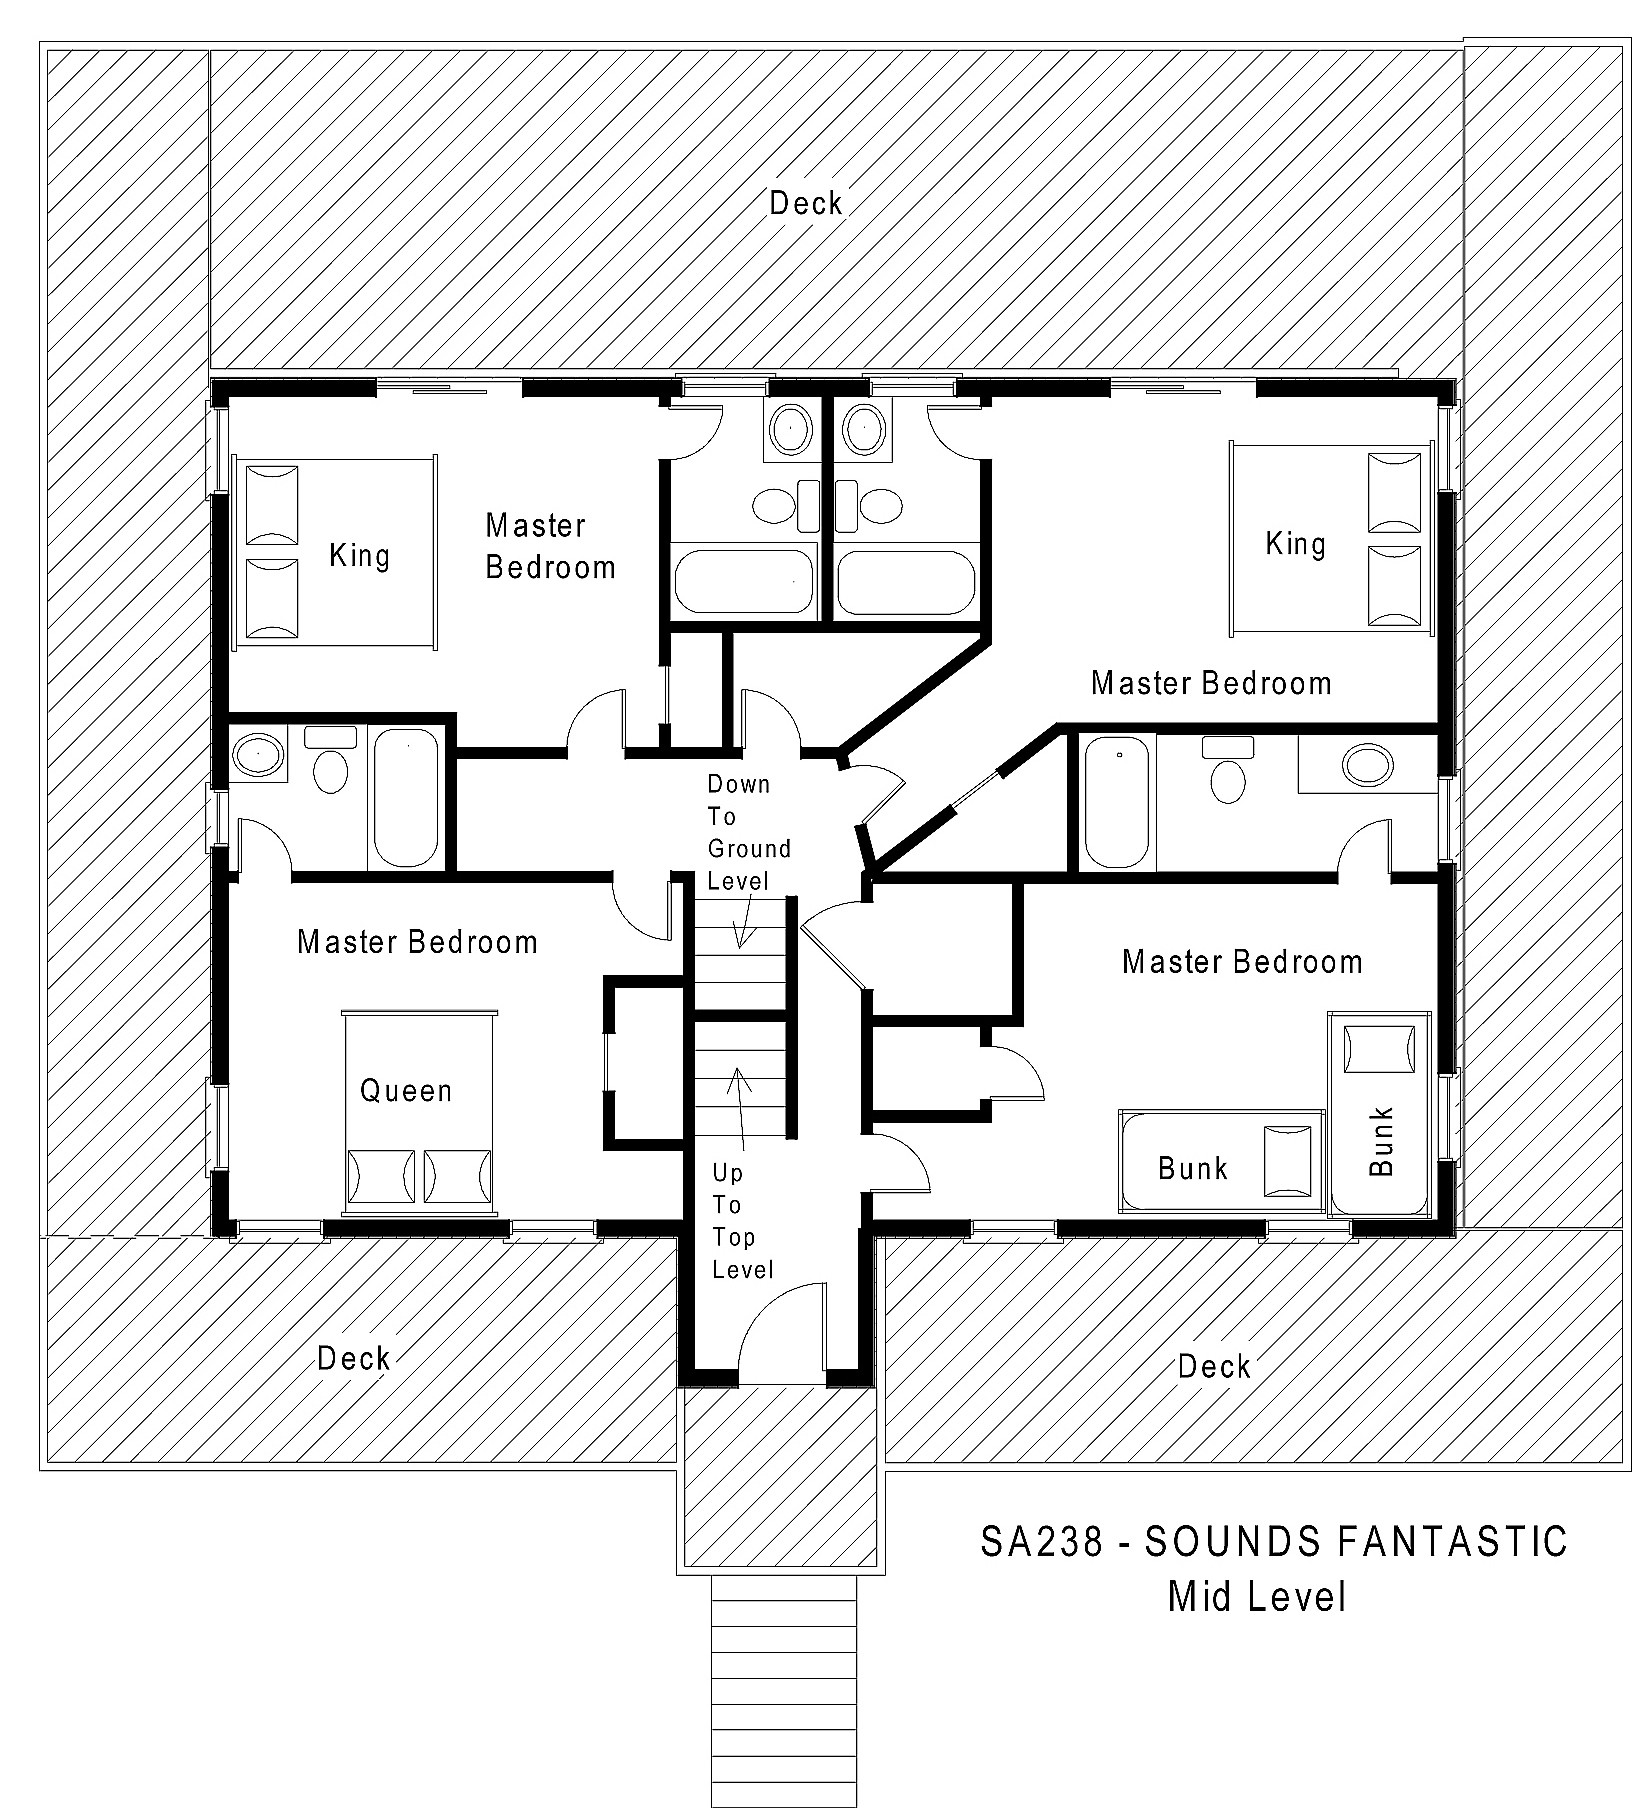 SA238 Sounds Fantastic - Floorplan Level 2